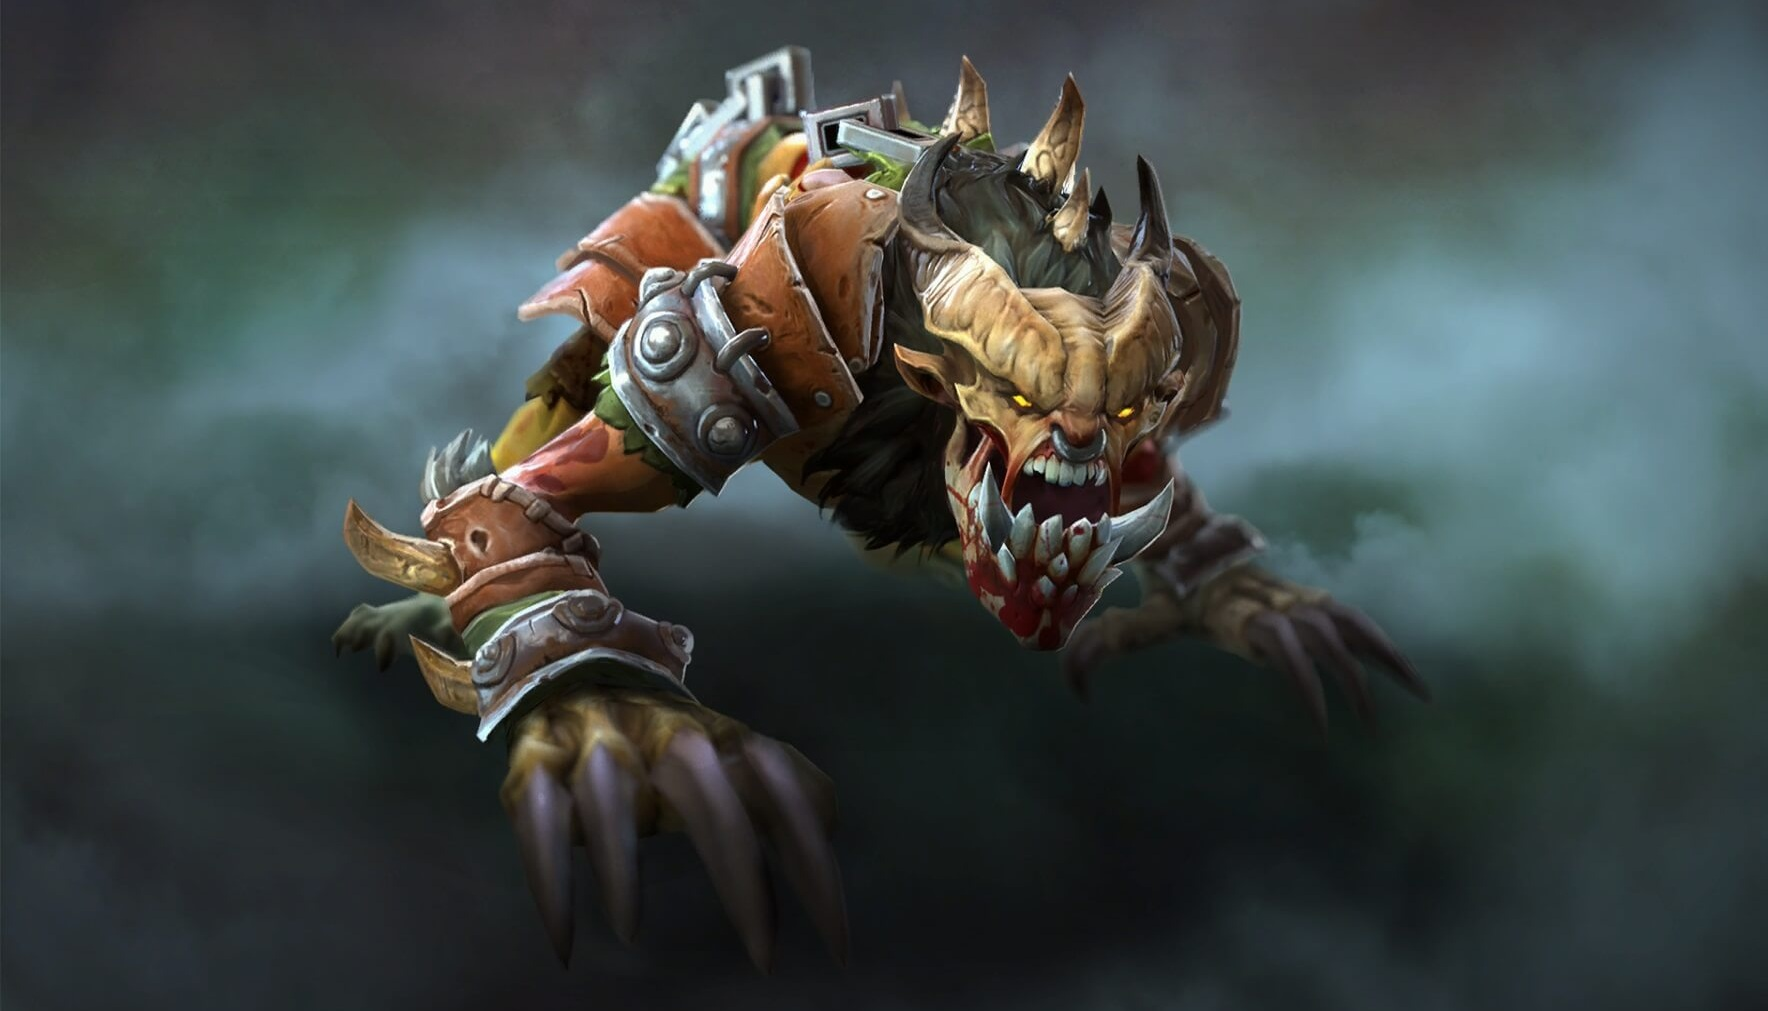 Ravenous Fiend loading screen for Lifestealer - Valve